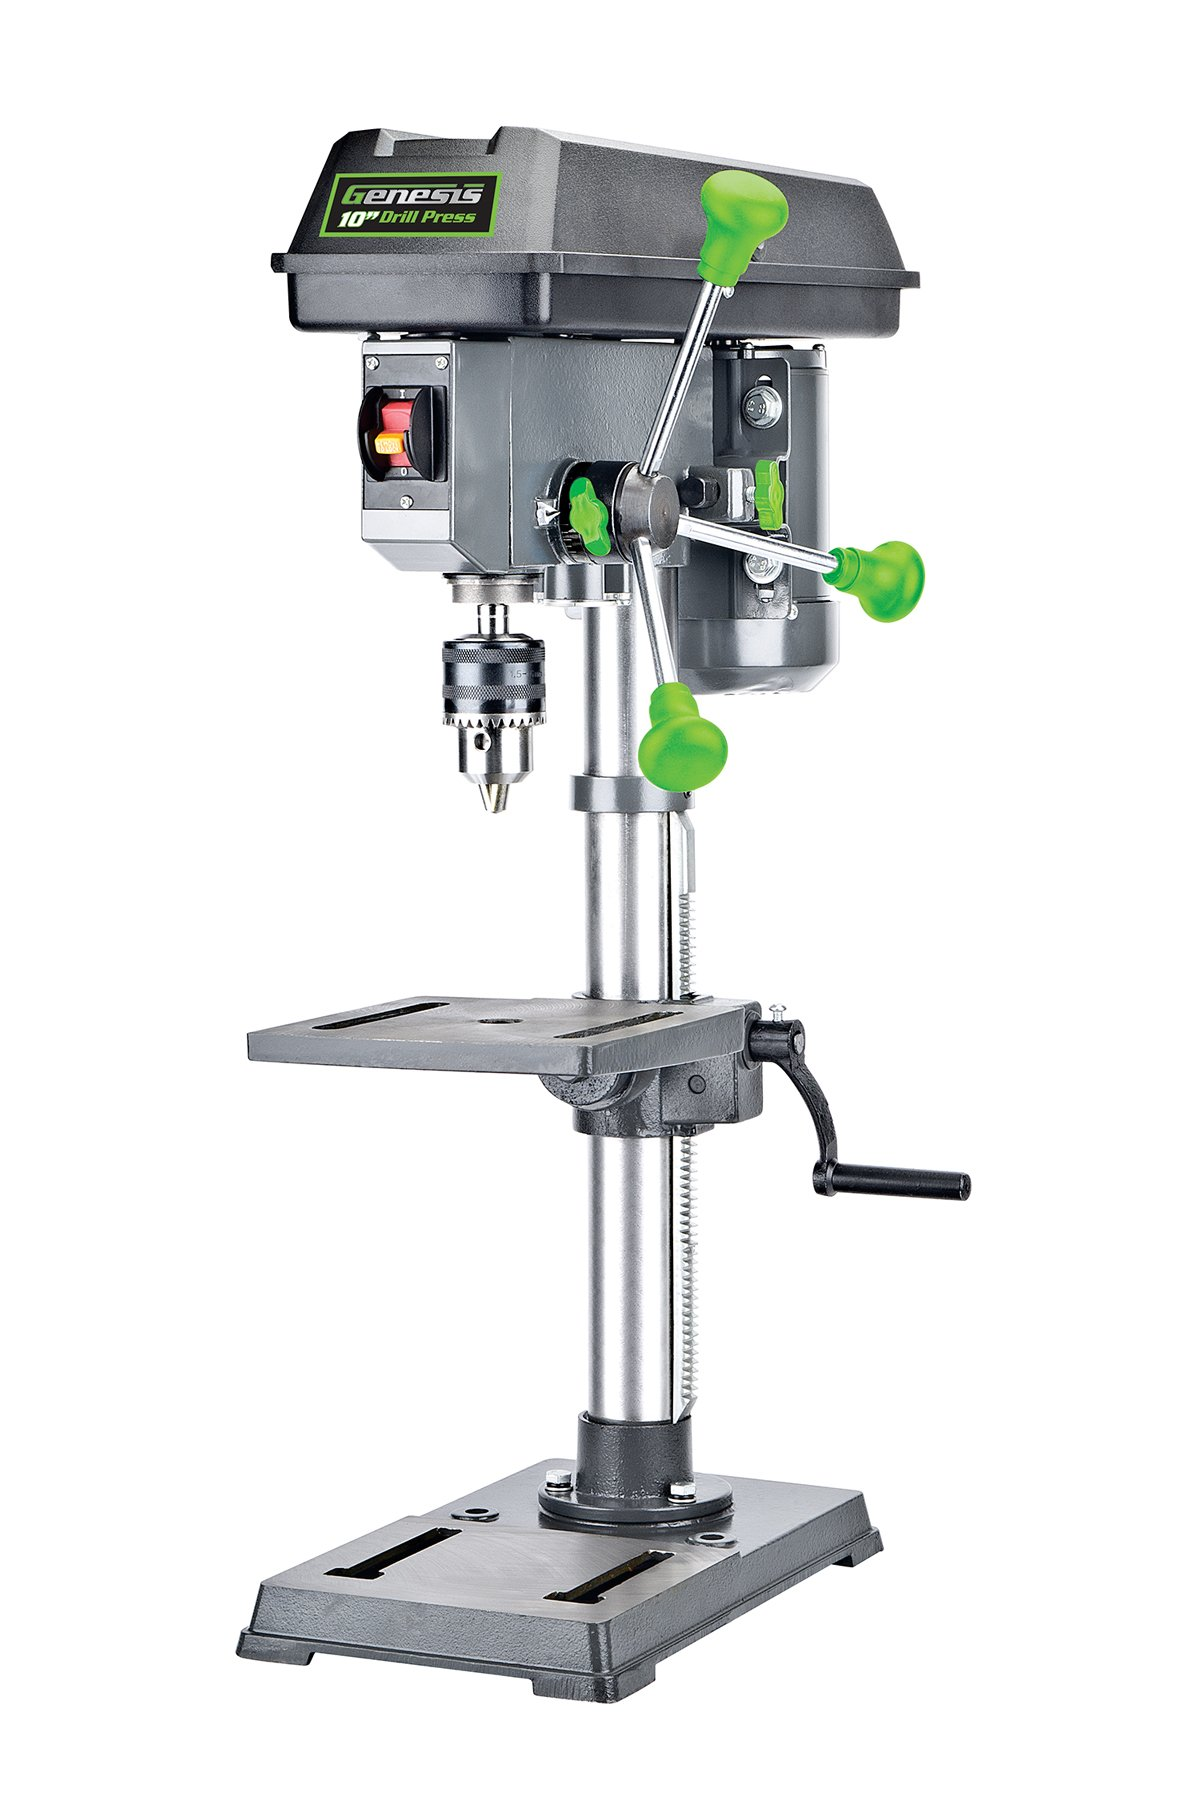 Genesis GDP1005A 10'' 5-Speed 4.1 Amp Drill Press with 5/8'' Chuck, with Integrated work light and Table that Rotates and Tilts